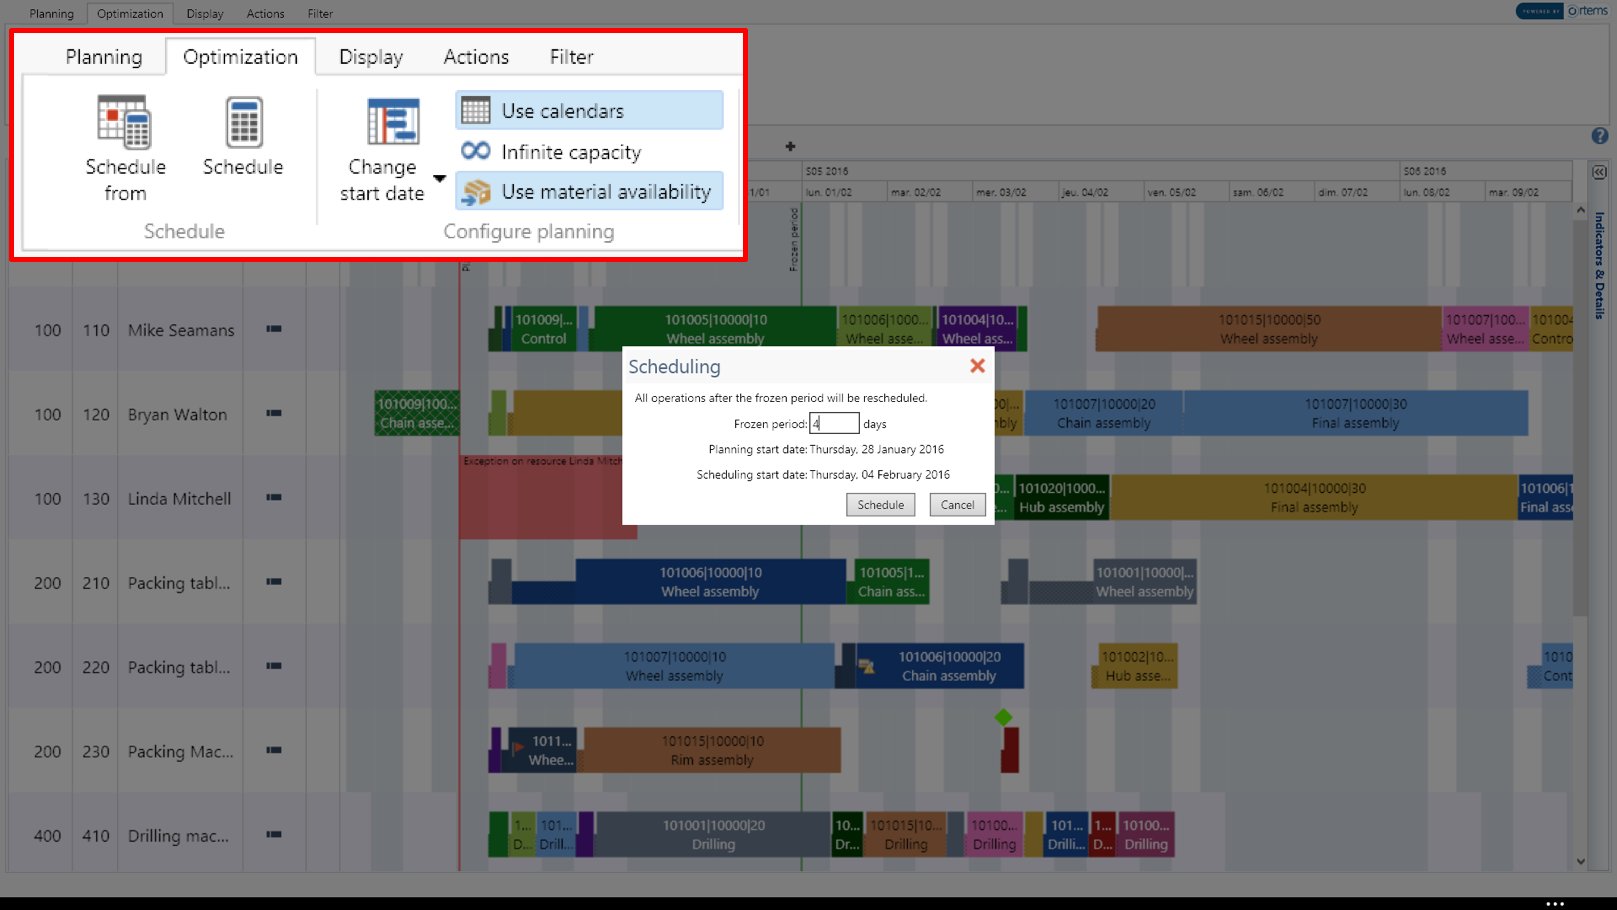 PlannerOne is a Constraint-based finite-capacity production scheduling tool.